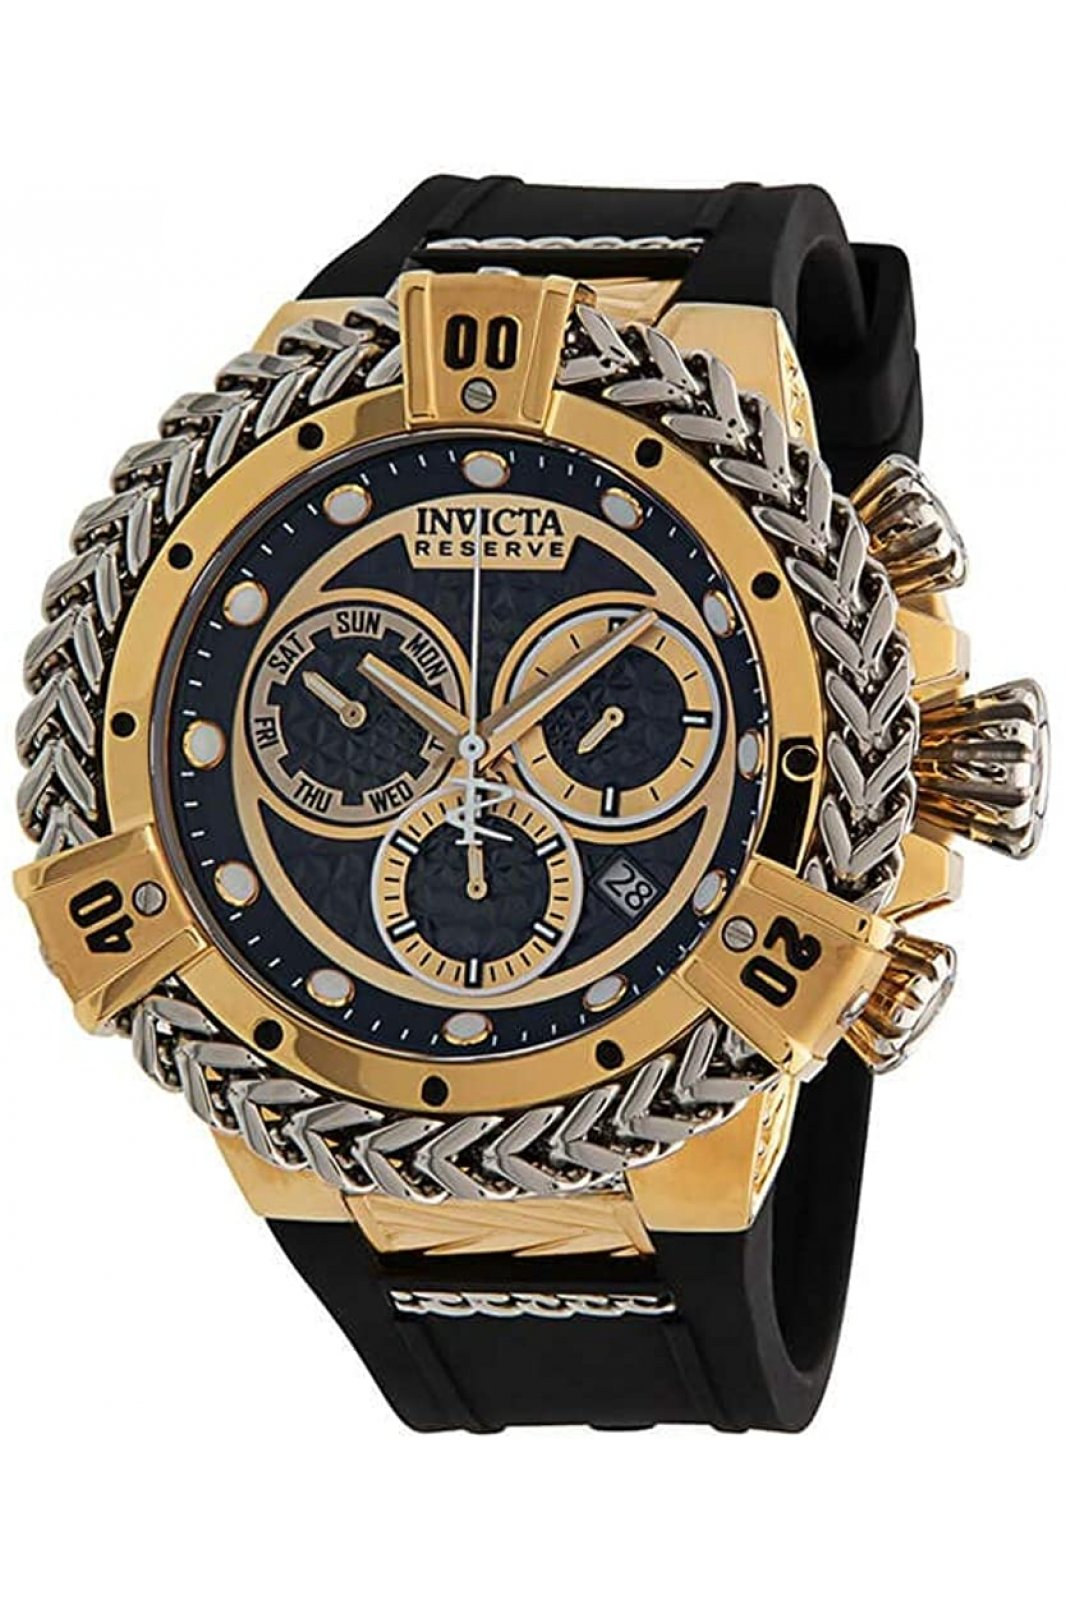 Invicta Reserve - Hercules 33154 Men's Quartz Watch - 53mm